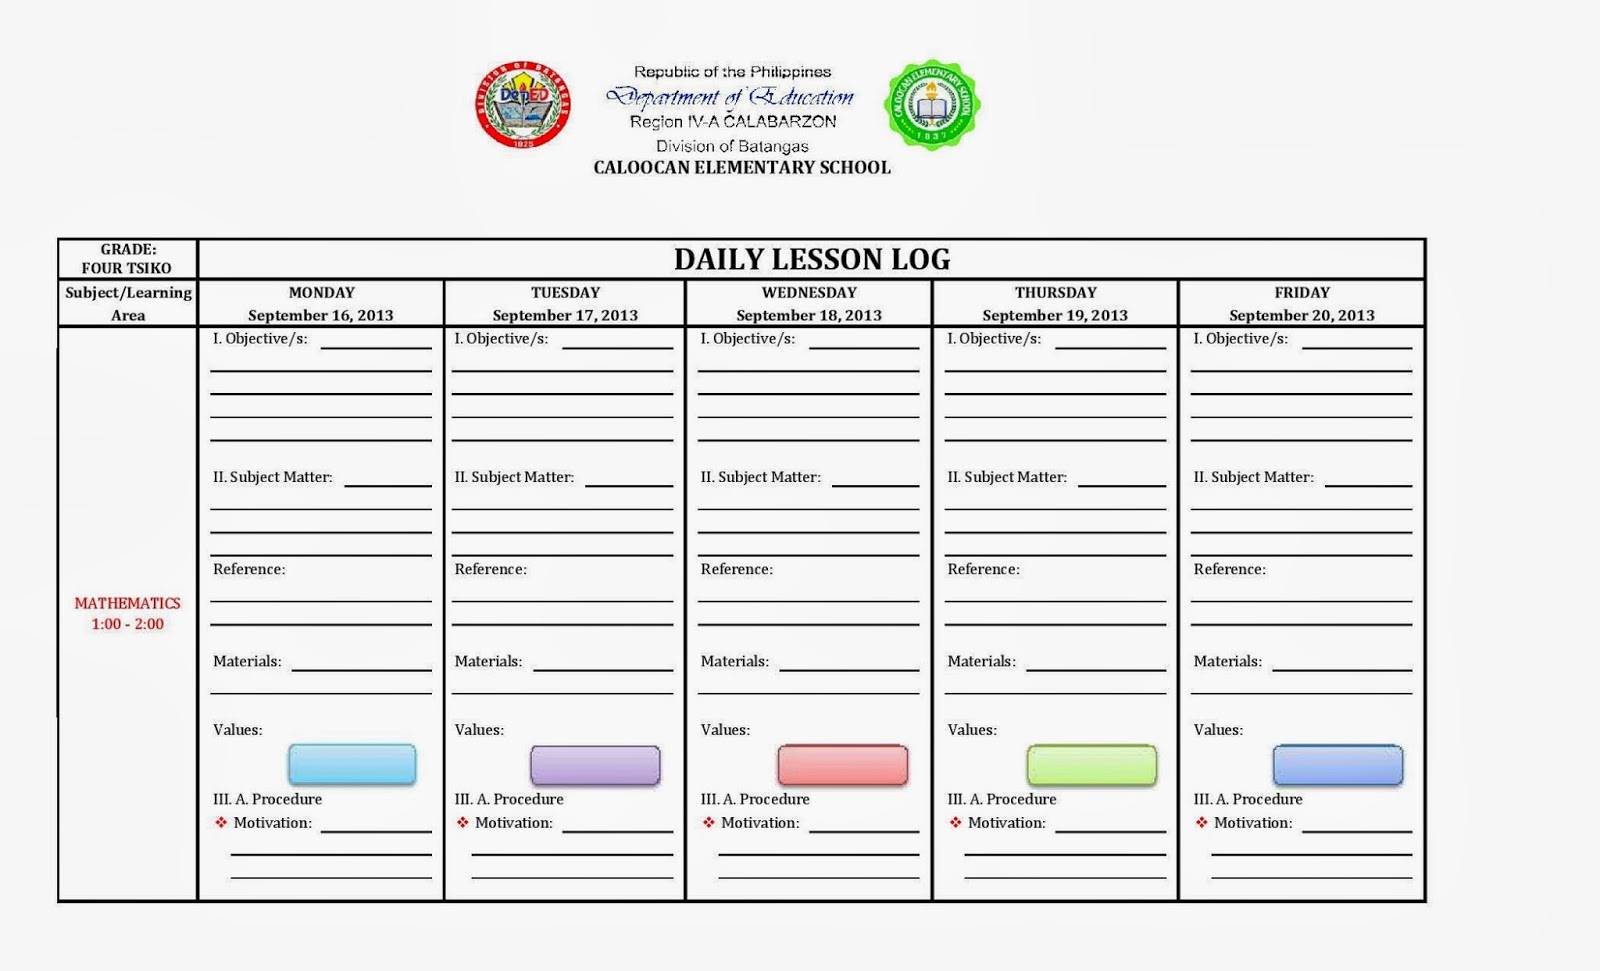 DAILY LESSON LOG FORMAT ENGLISH FILIPINO LANGUAGE FILESishare – Sample Daily Lesson Plan Template